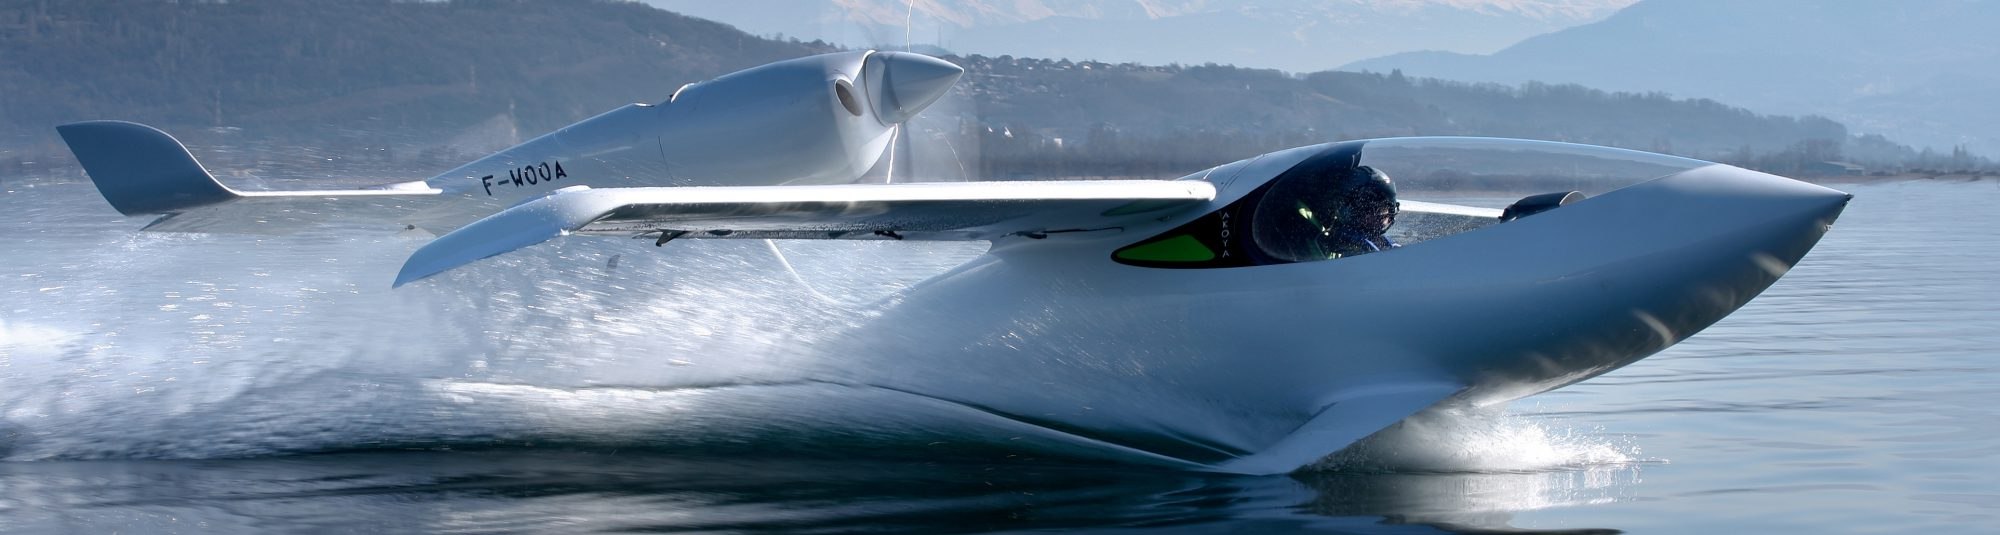 Private seaplane with hydrofoils on water